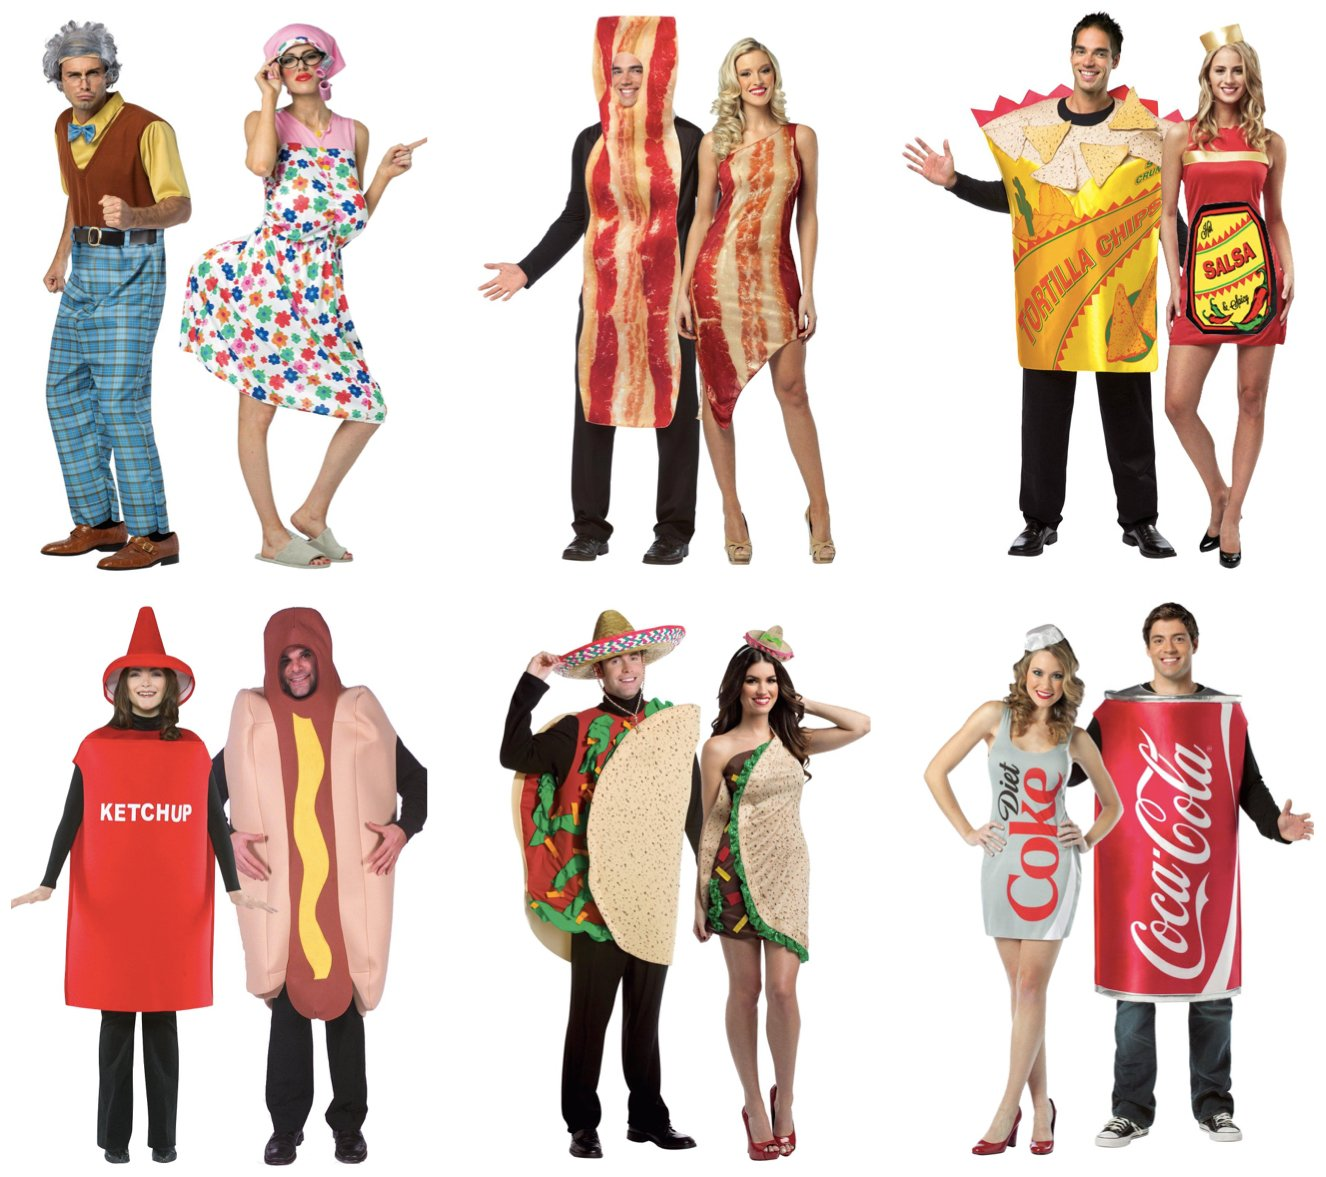 More Humorous Couples Costumes